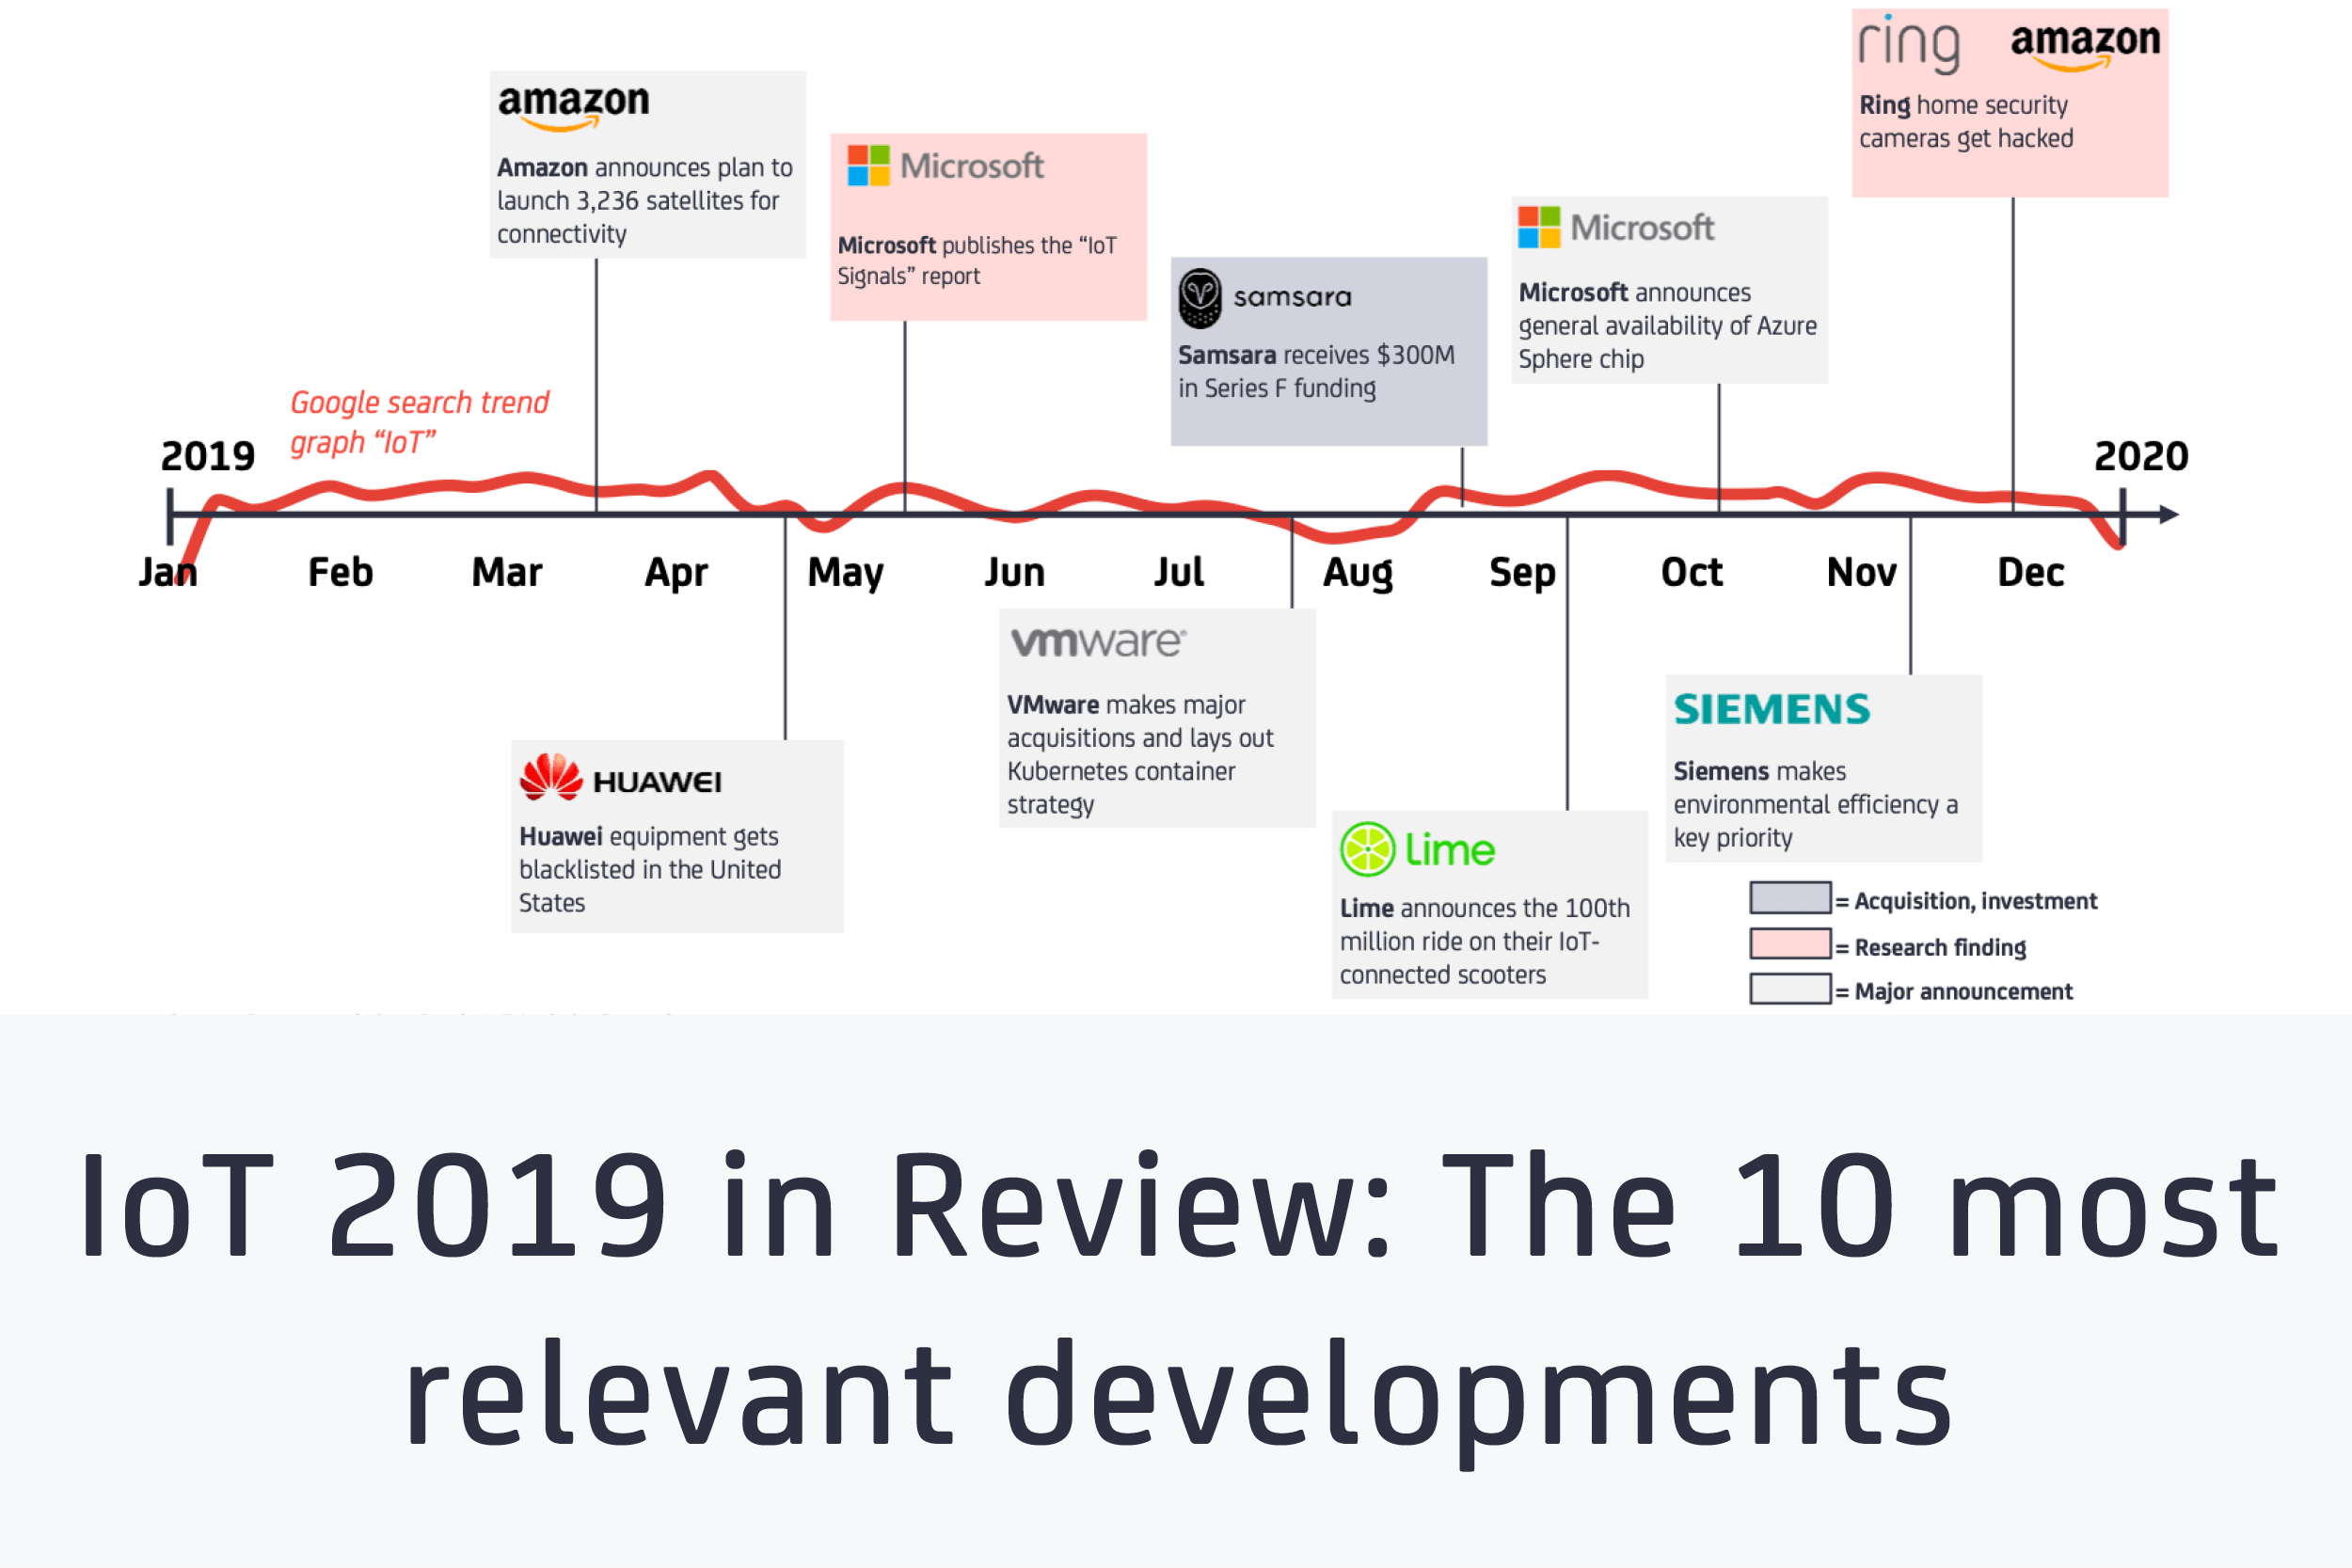 IoT 2019 in review - feature image